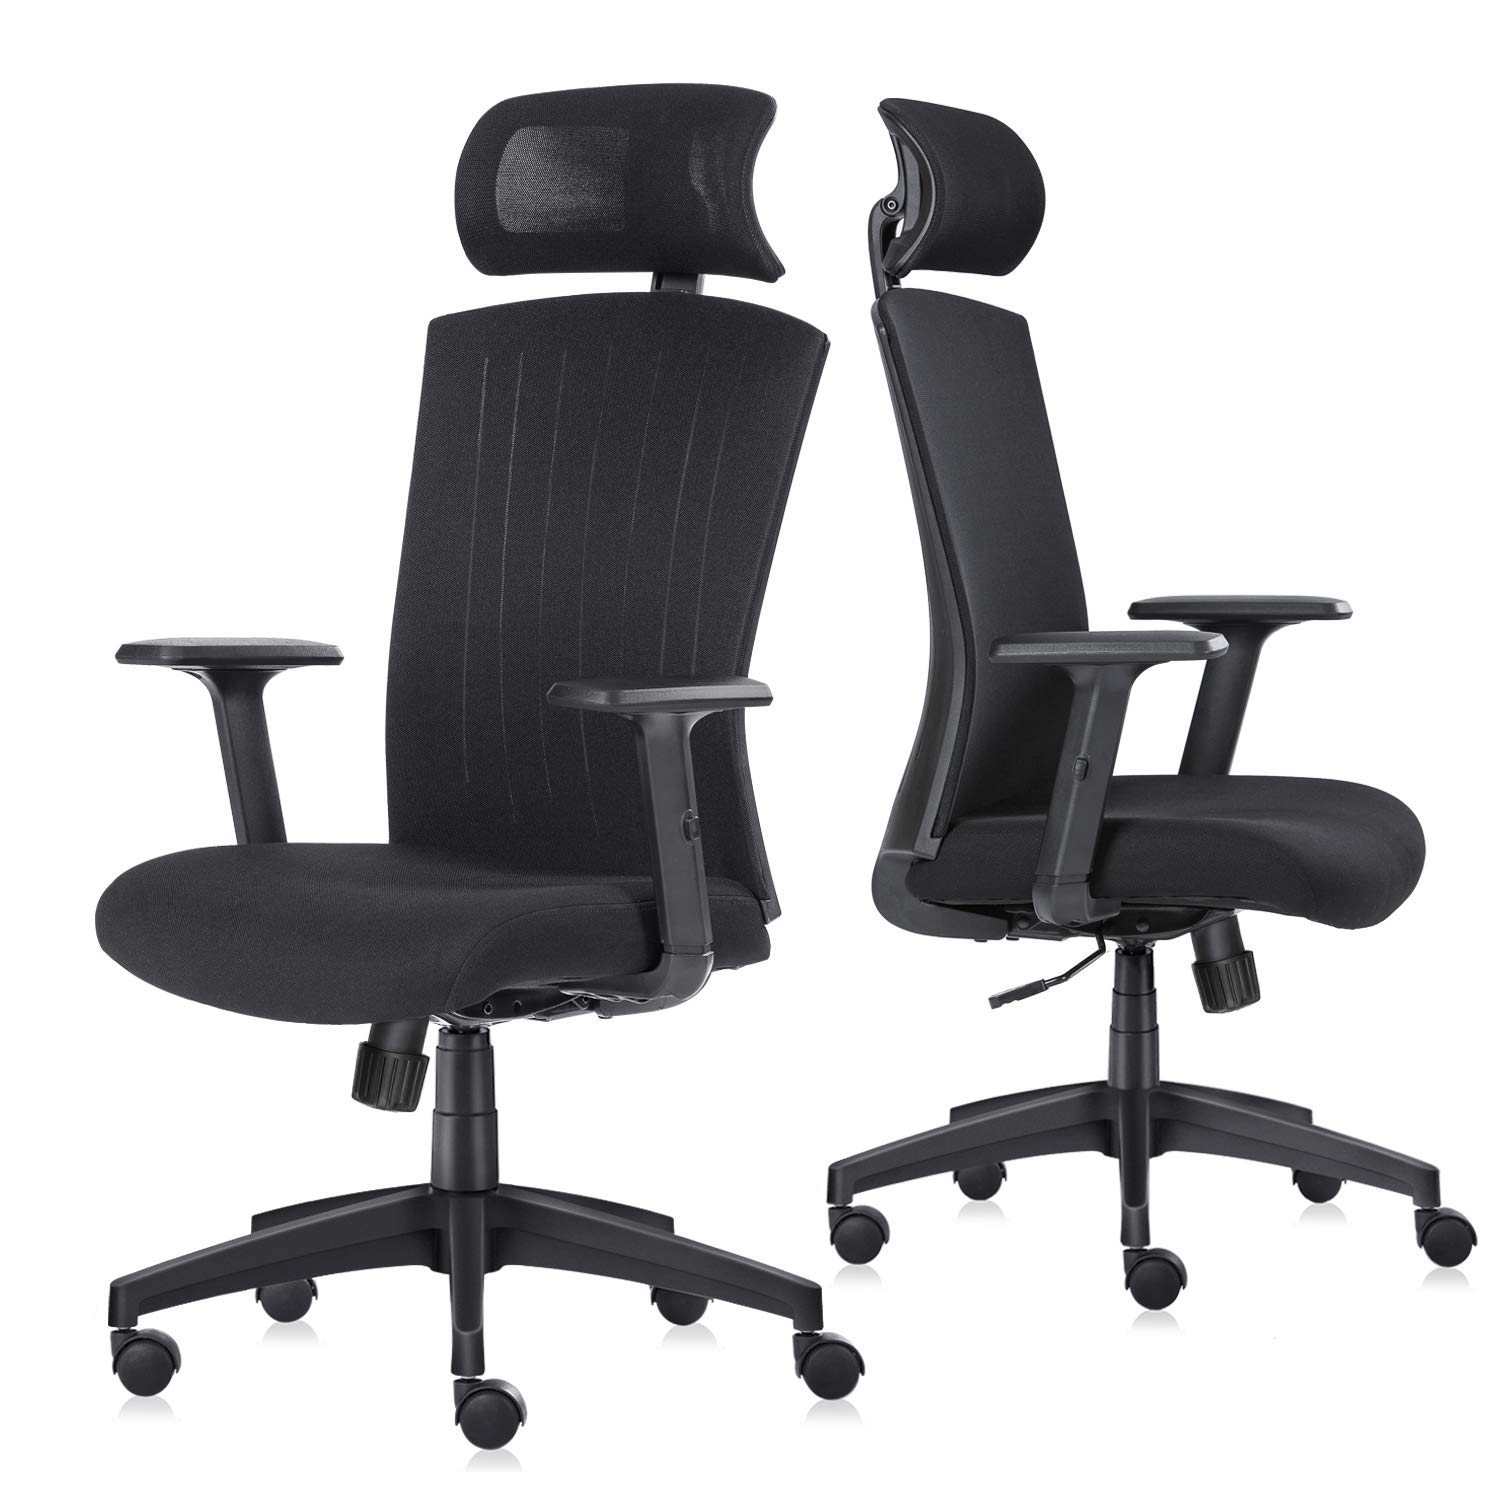 Ergonomic Office Chair, High-Back Mesh Computer Desk Chairs, Flexible Swivel Task Chair with Adjustable Height and Lift Armrest, Turnable Headrest and Soft Sponge Cushion